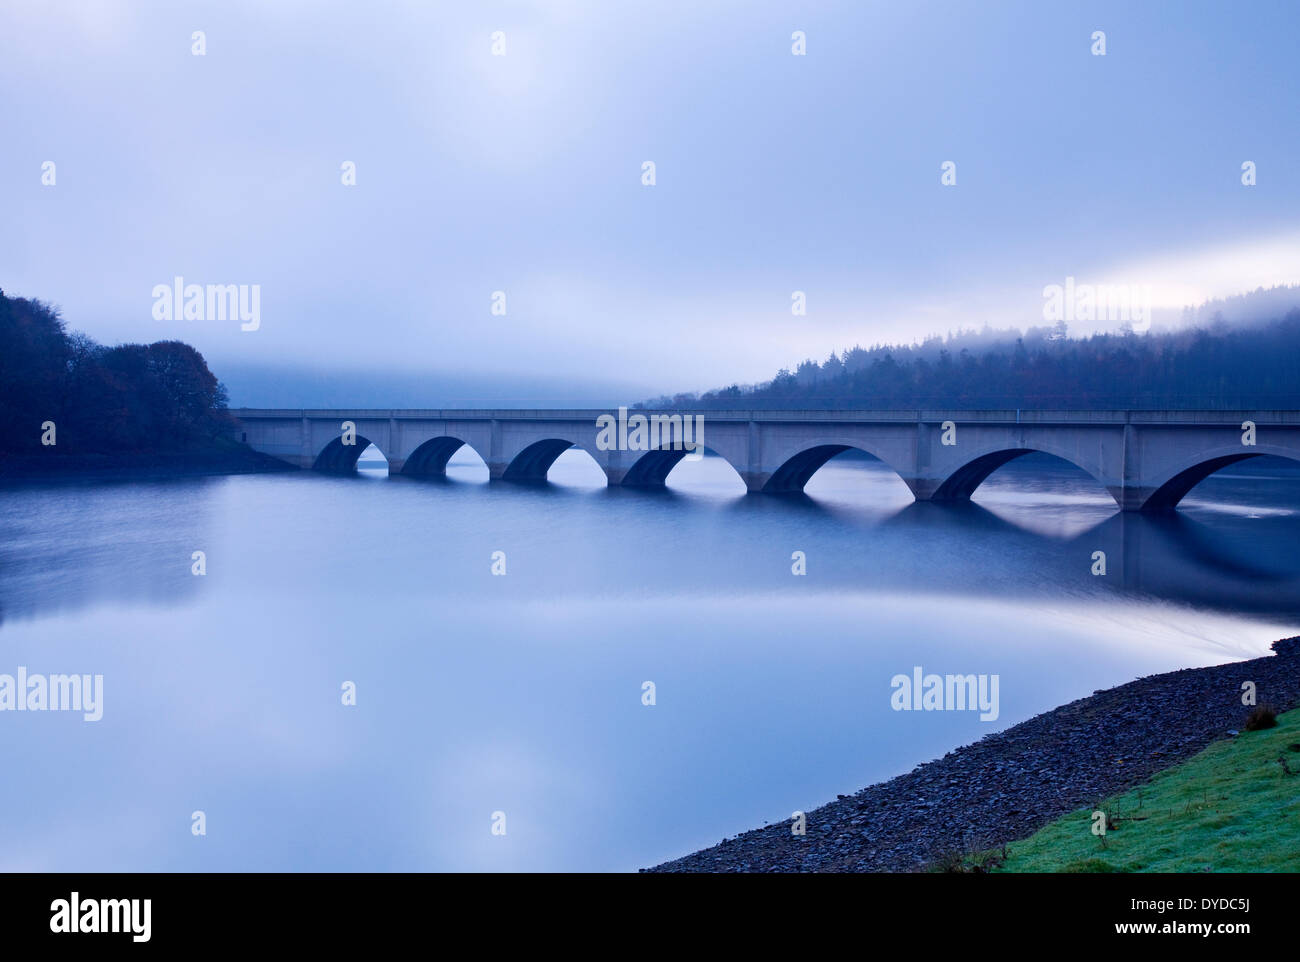 Ashopton viaduc sur Ladybower Reservoir dans le Peak District sur un matin brumeux. Photo Stock